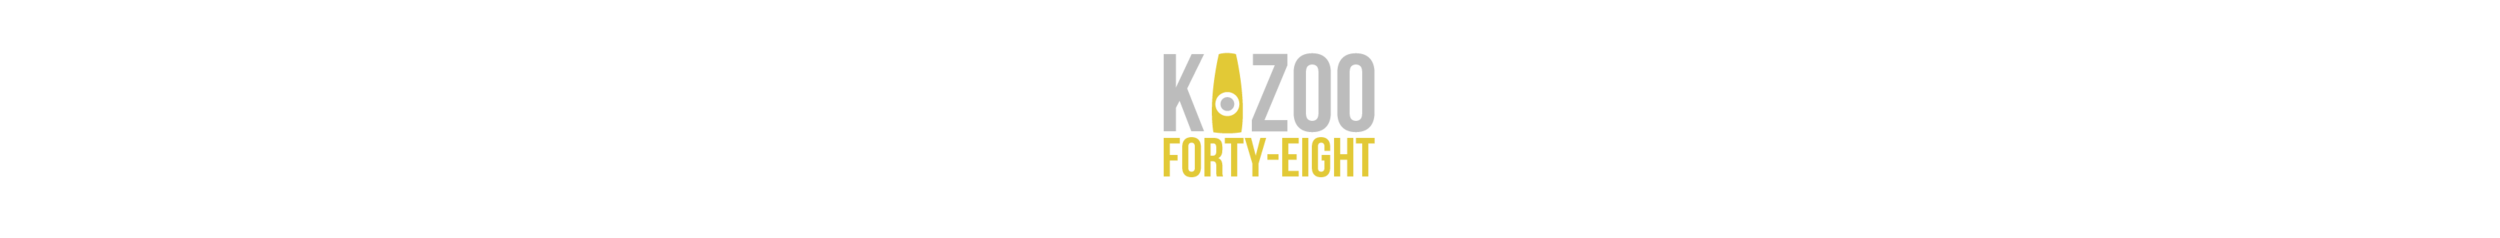 Kazoo_Graphics_FooterImage-02.png